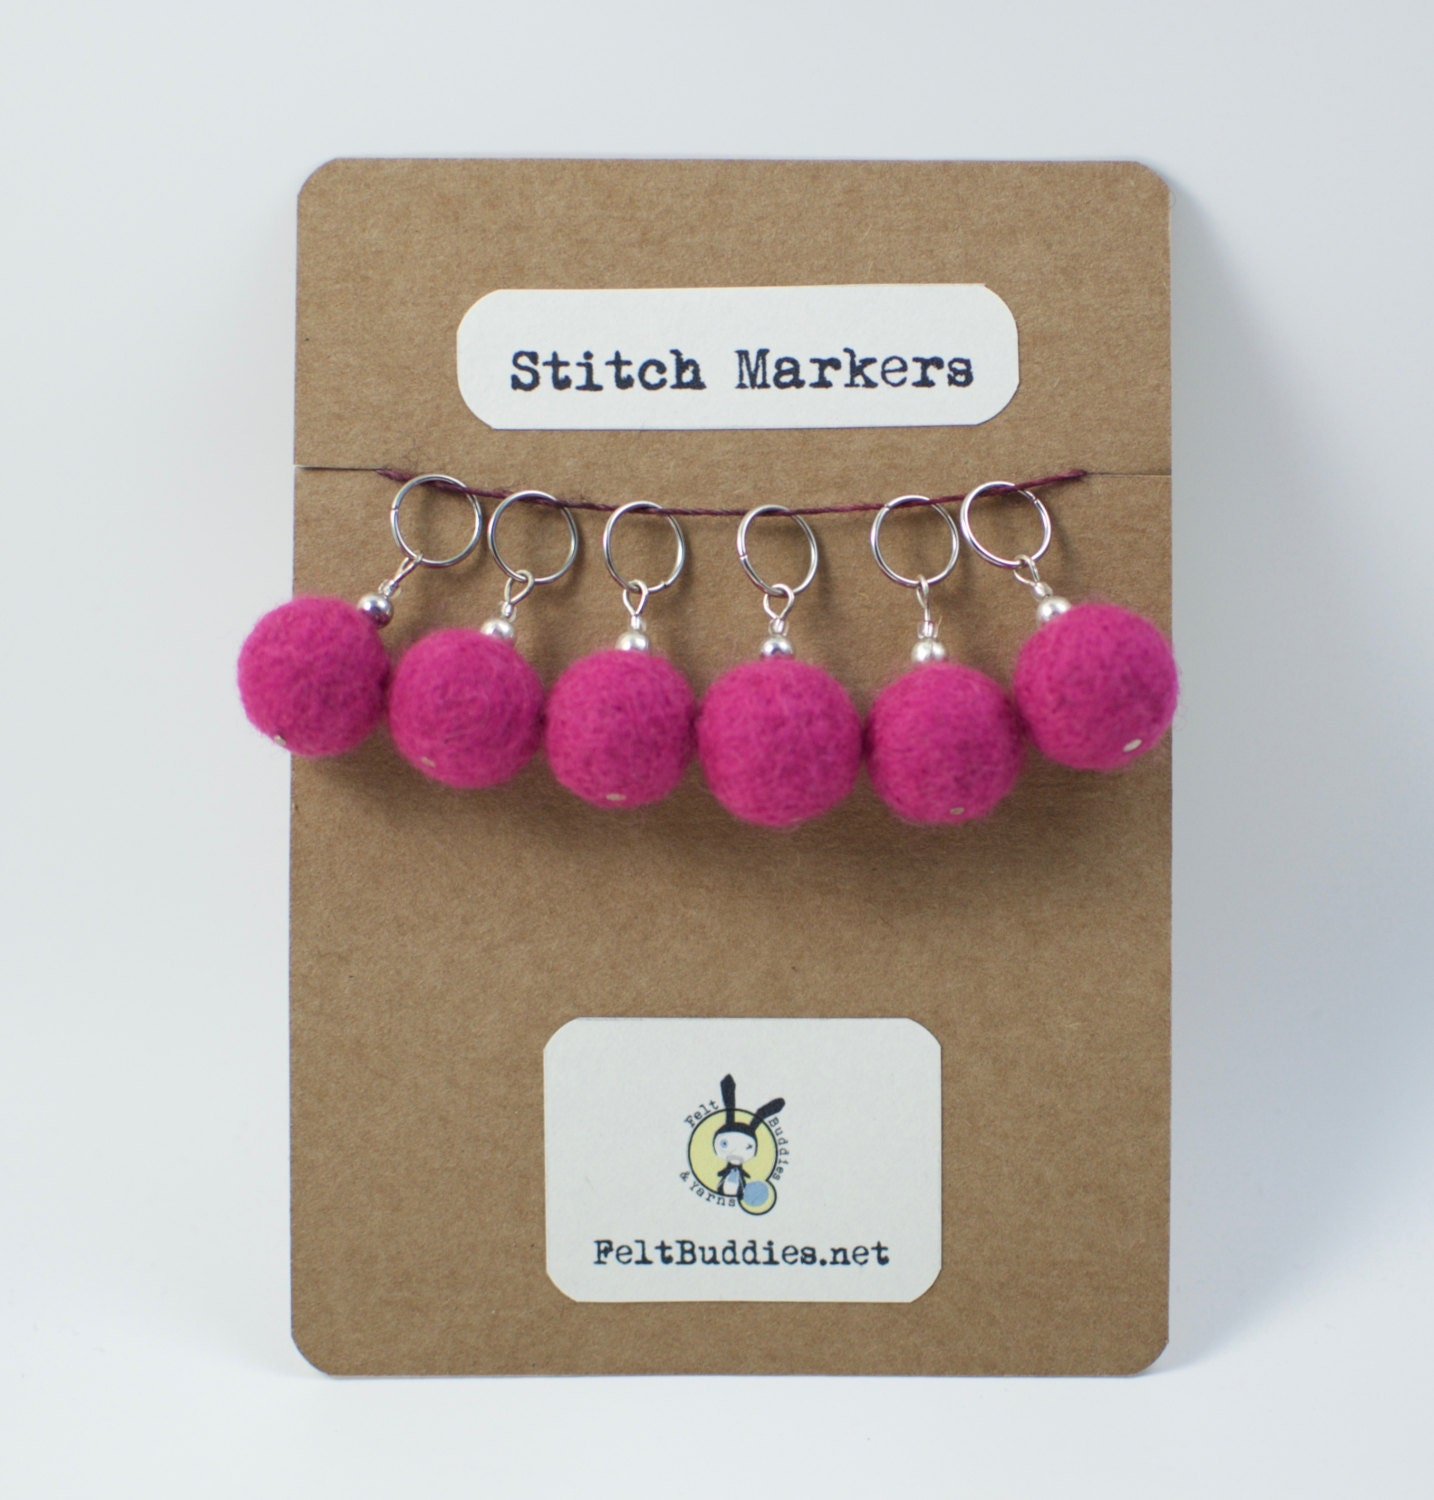 Knitting Markers Etsy : Stitch markers set of pink knitting notions from